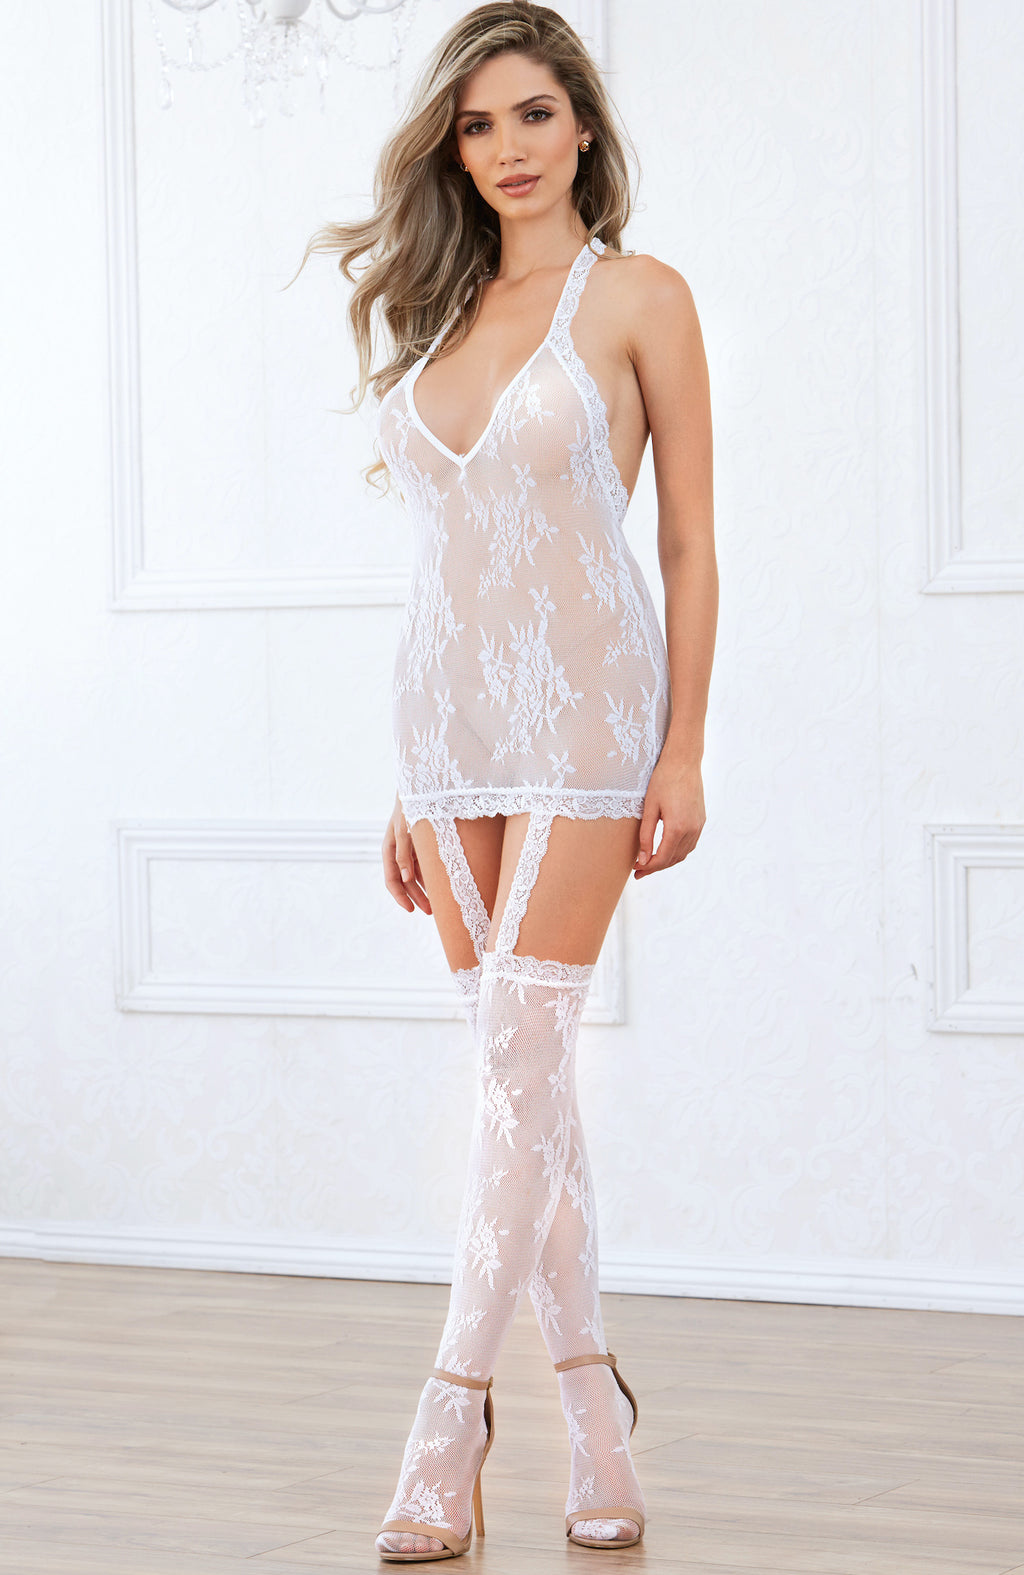 Floral Lace Chemise by Dreamgirl-Chemises-new tempt-One Size-White-Bouji Lingerie